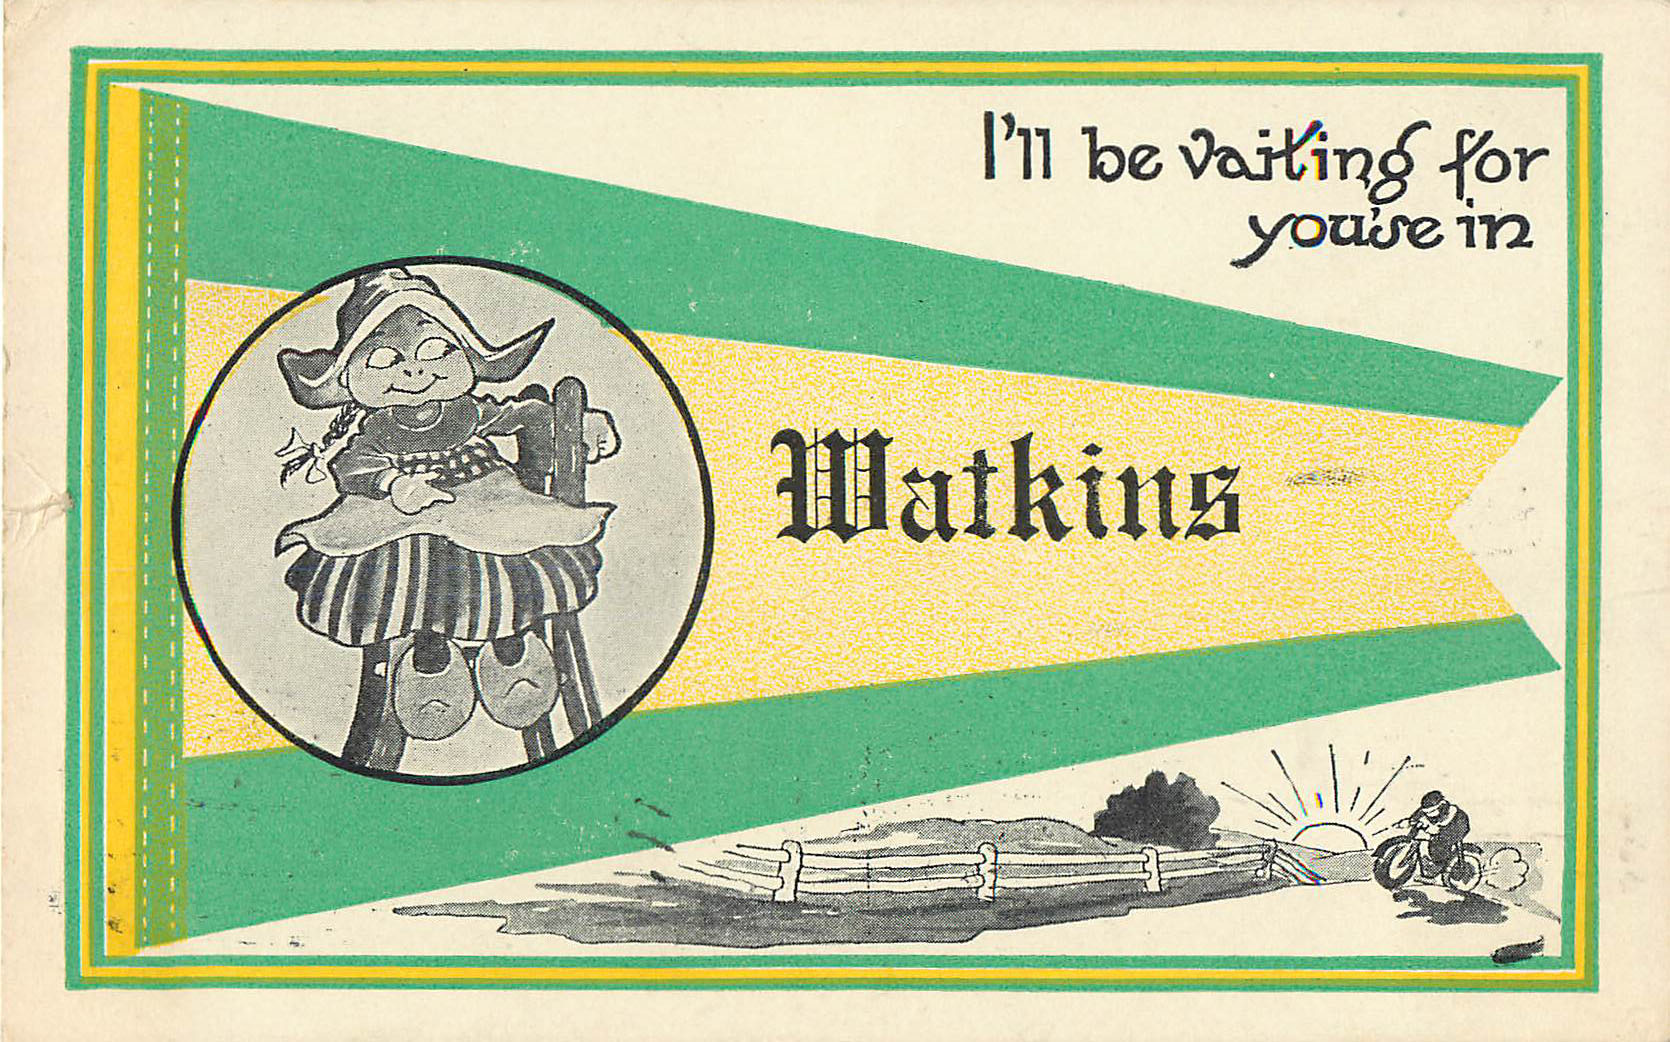 I'll be waiting for you'se in Watkins - Pennant Postcard